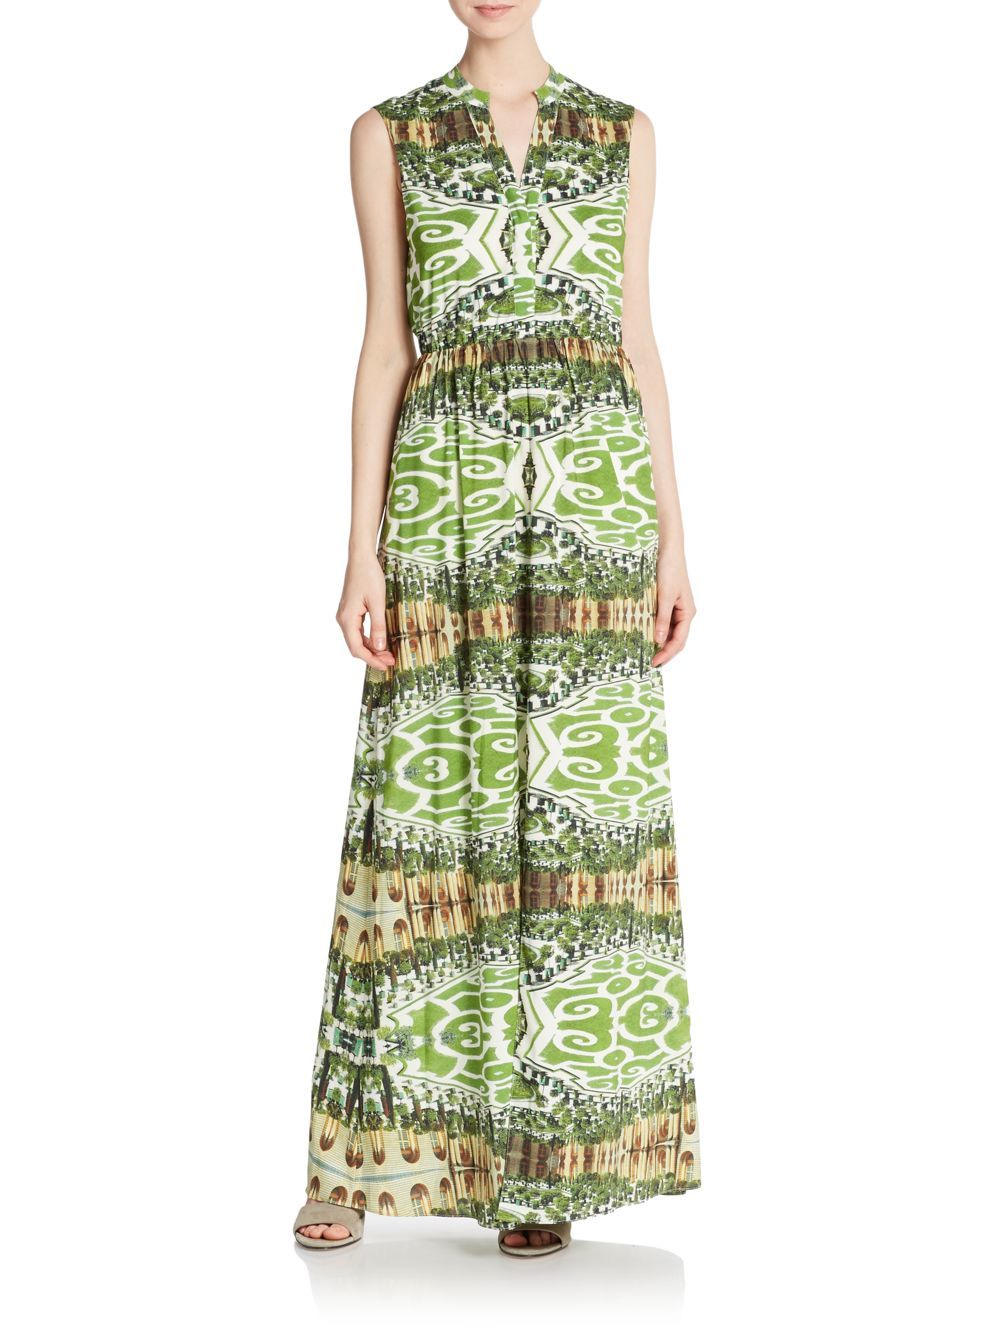 Alice And Olivia Green Print Dress Mixed Maxi In Abstract Garden